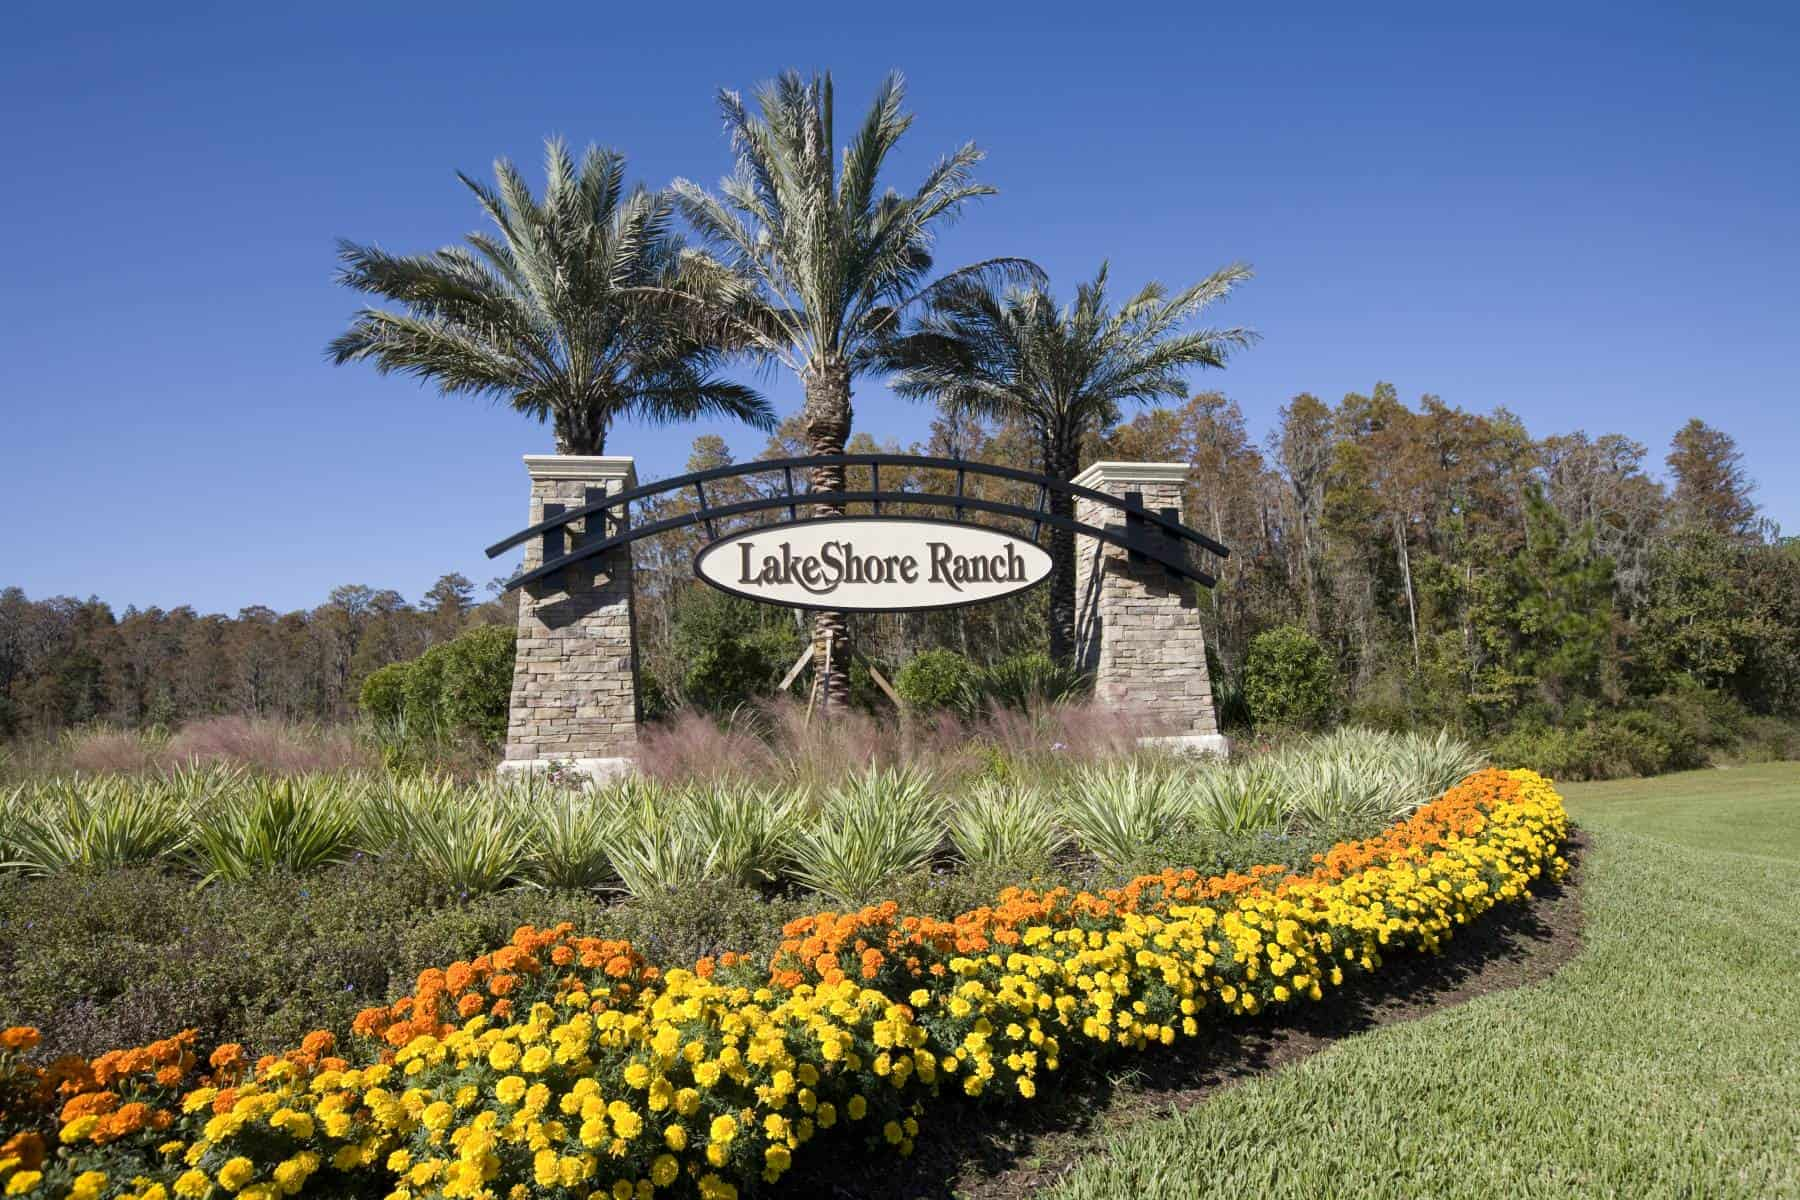 Lakeshore Ranch